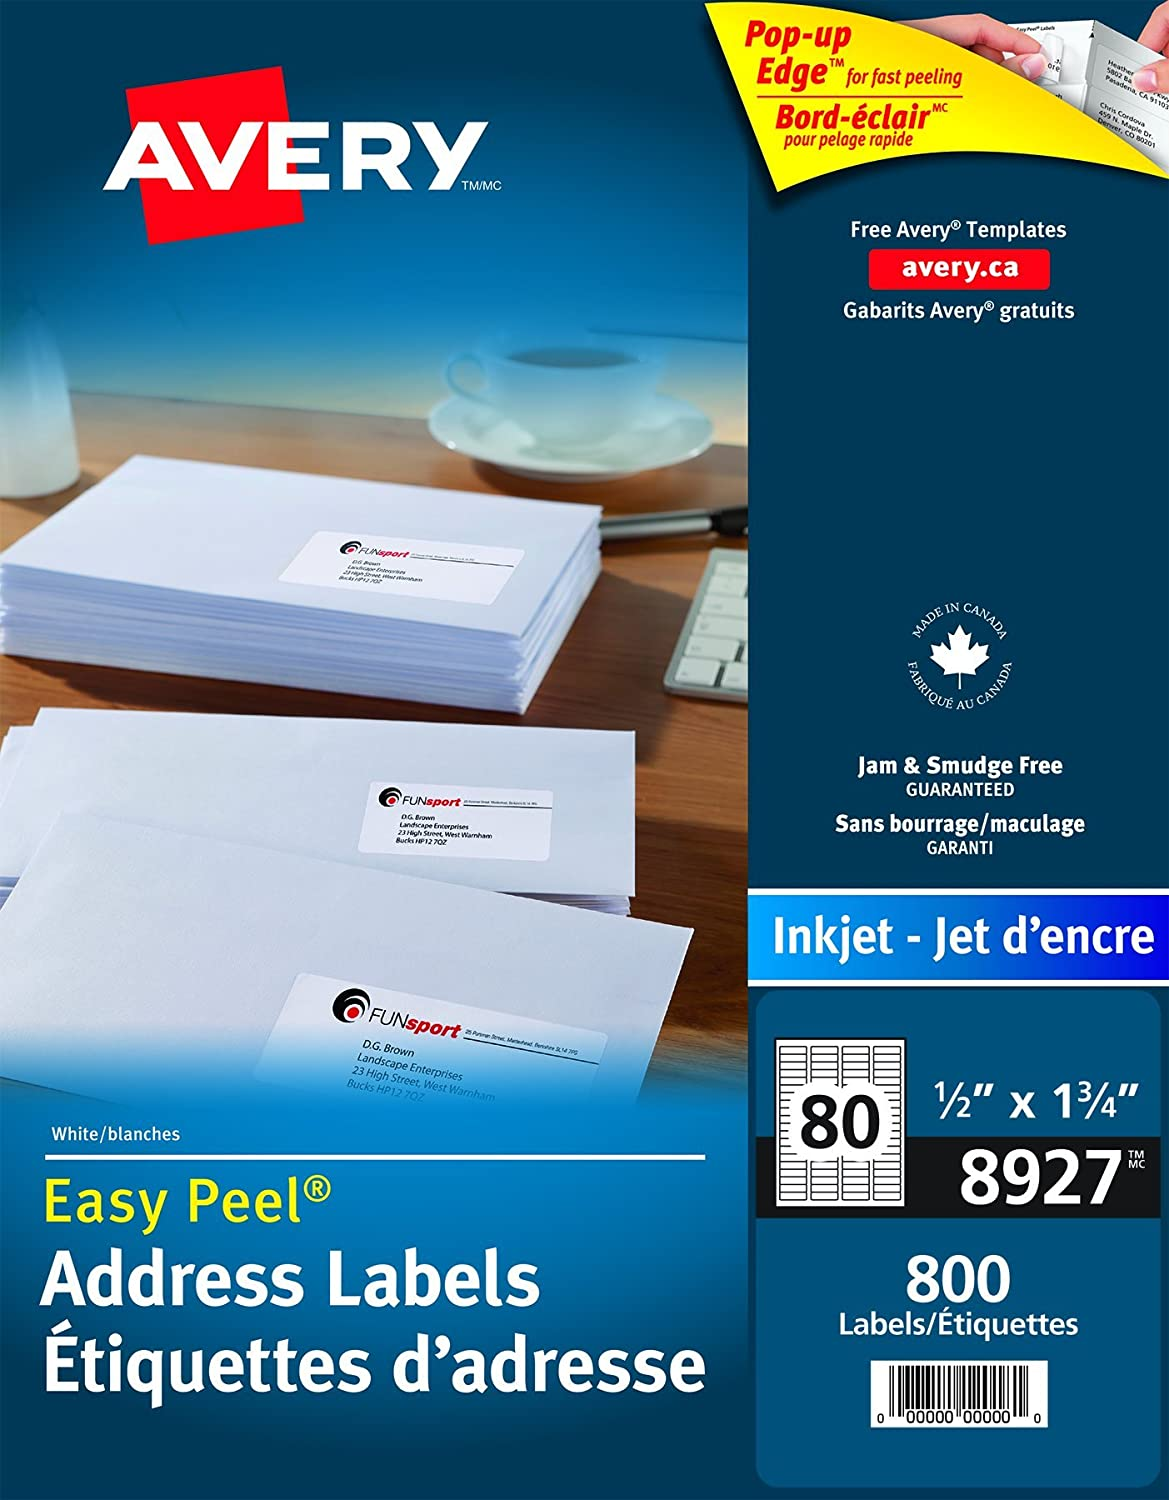 Avery Address Labels With Easy Peel For Inkjet Printers 1 2 X 3 4 White Rectangle 800 Permanent 8927 Made In Canada The Canadian